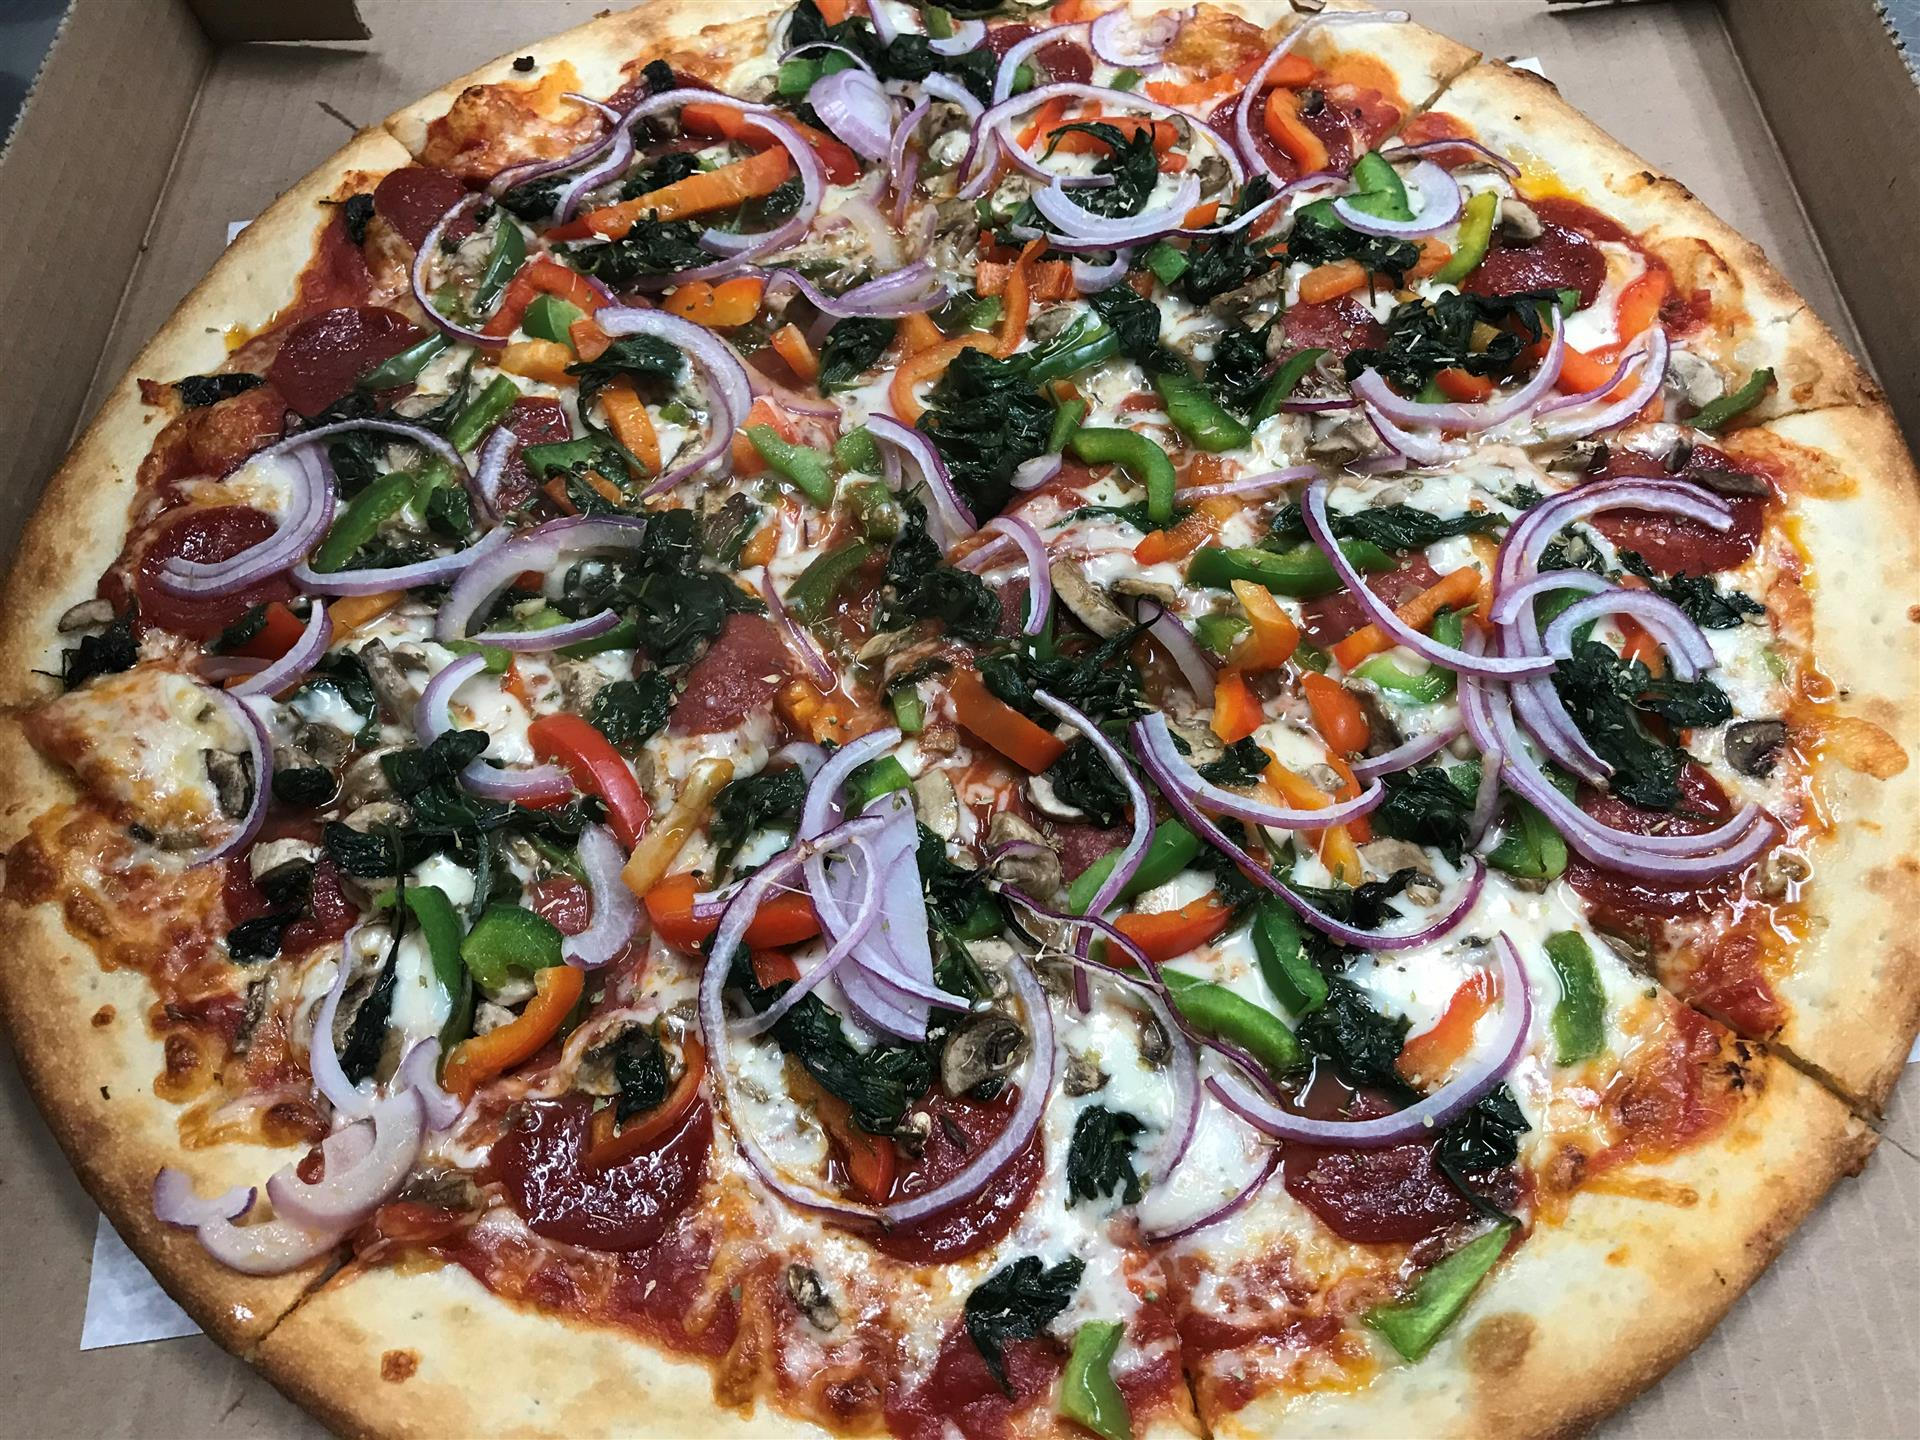 Veggie Lover's pizza. Red & green peppers, sautéed spinach, red onions & feta